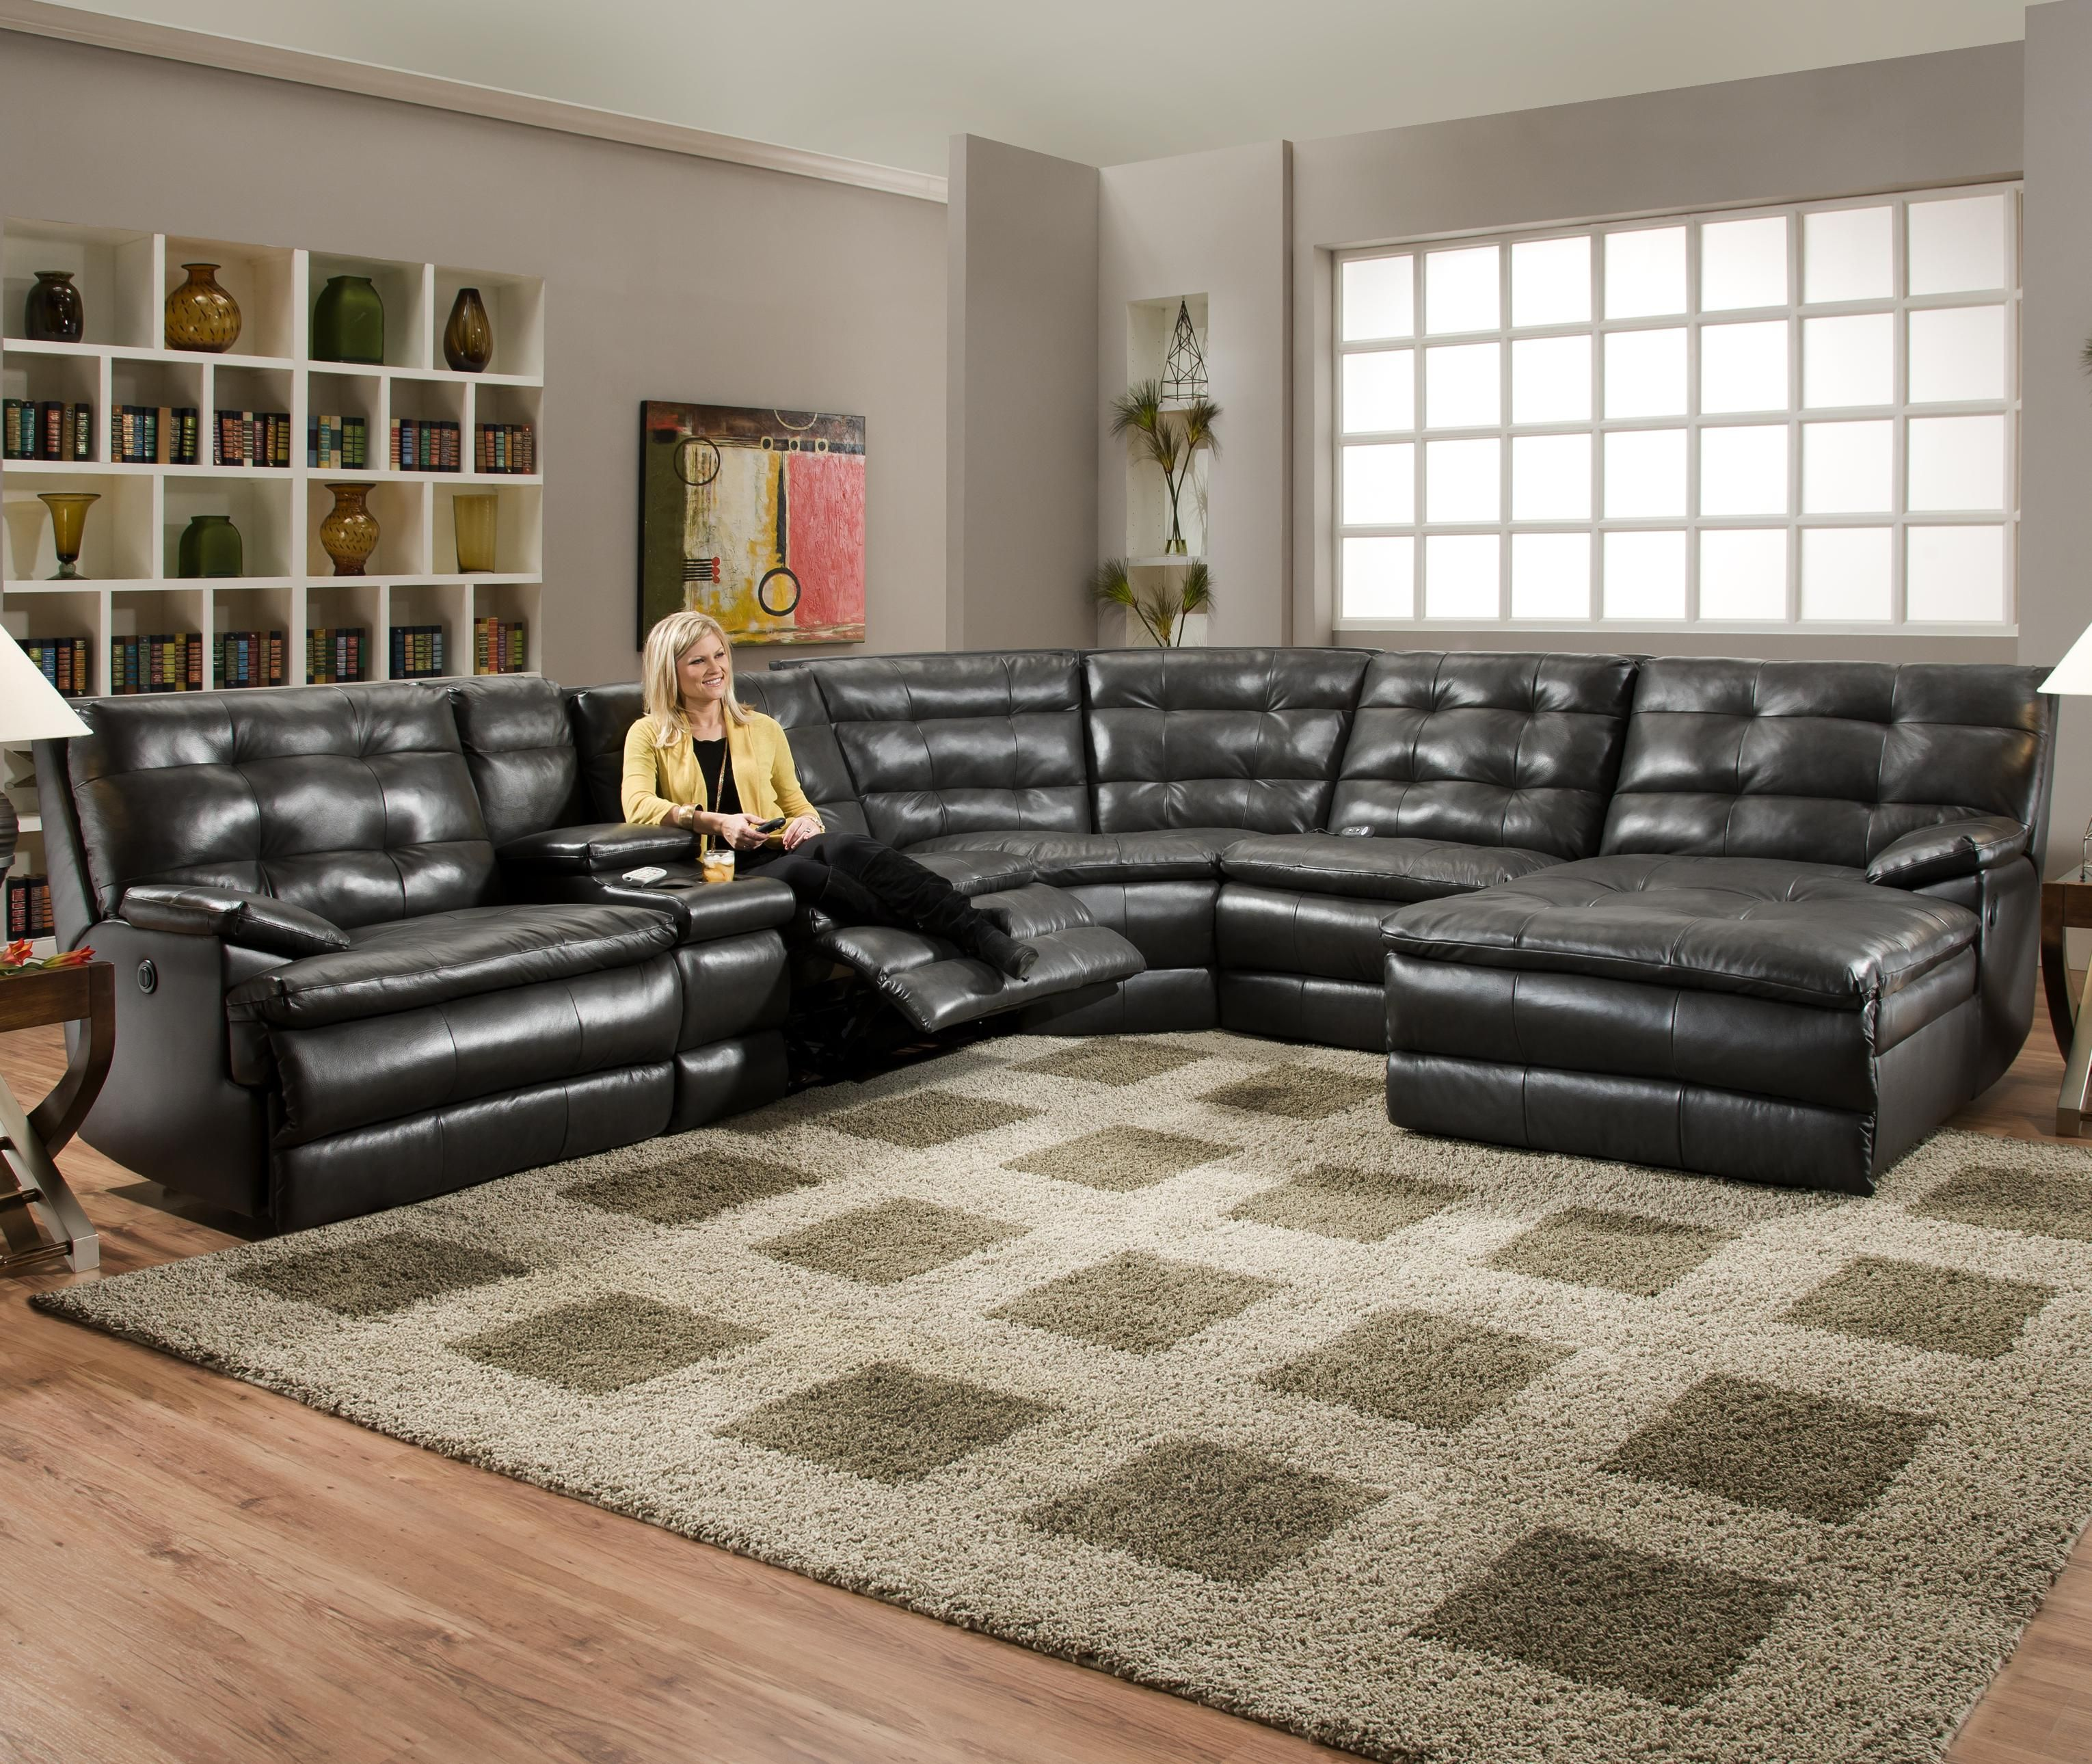 The Large Construction Of This Reclining Sectional Sofa Will Allow Your Family Ro Large Sectional Sofa Contemporary Sectional Sofa Sectional Sofa With Recliner